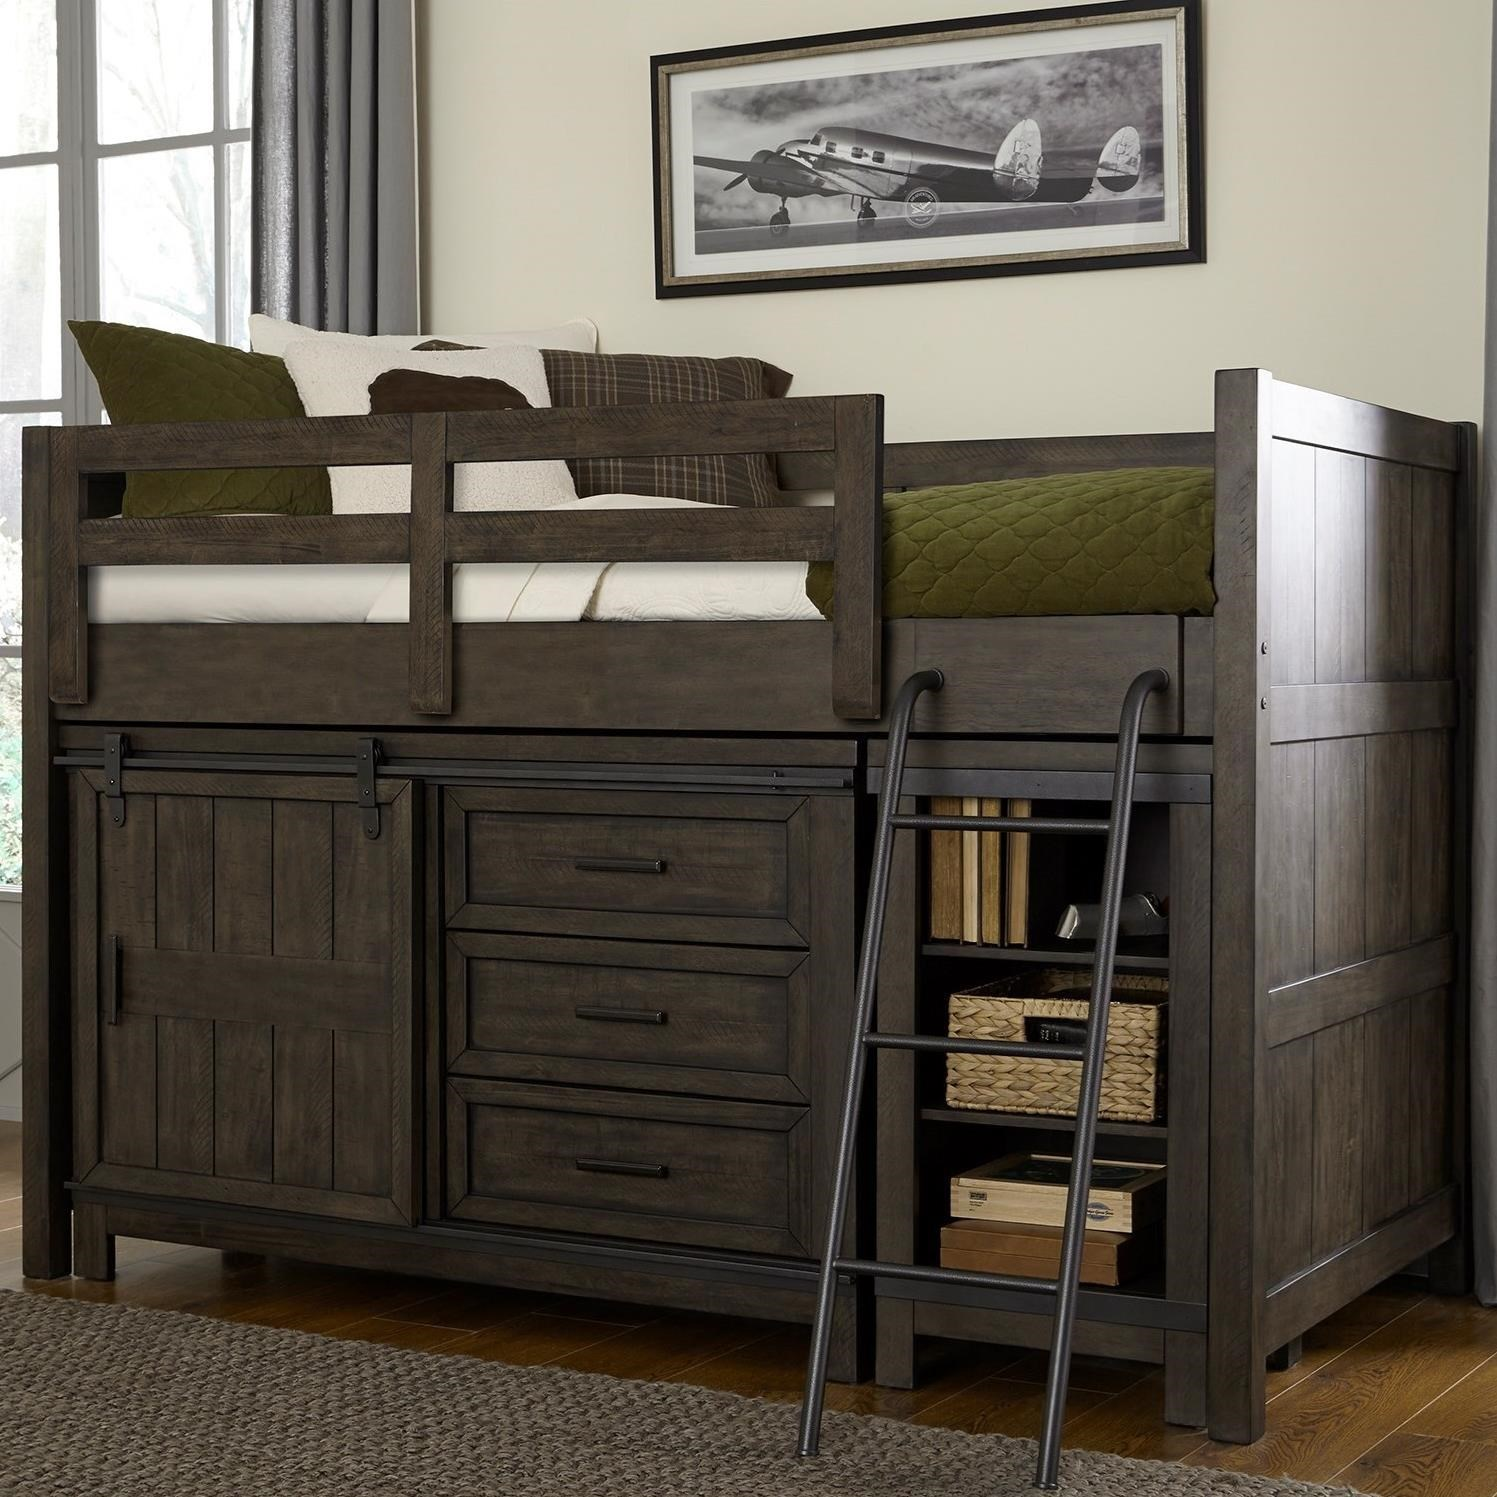 Rustic Twin Loft Bed with Dresser and Low Loft Bookcase